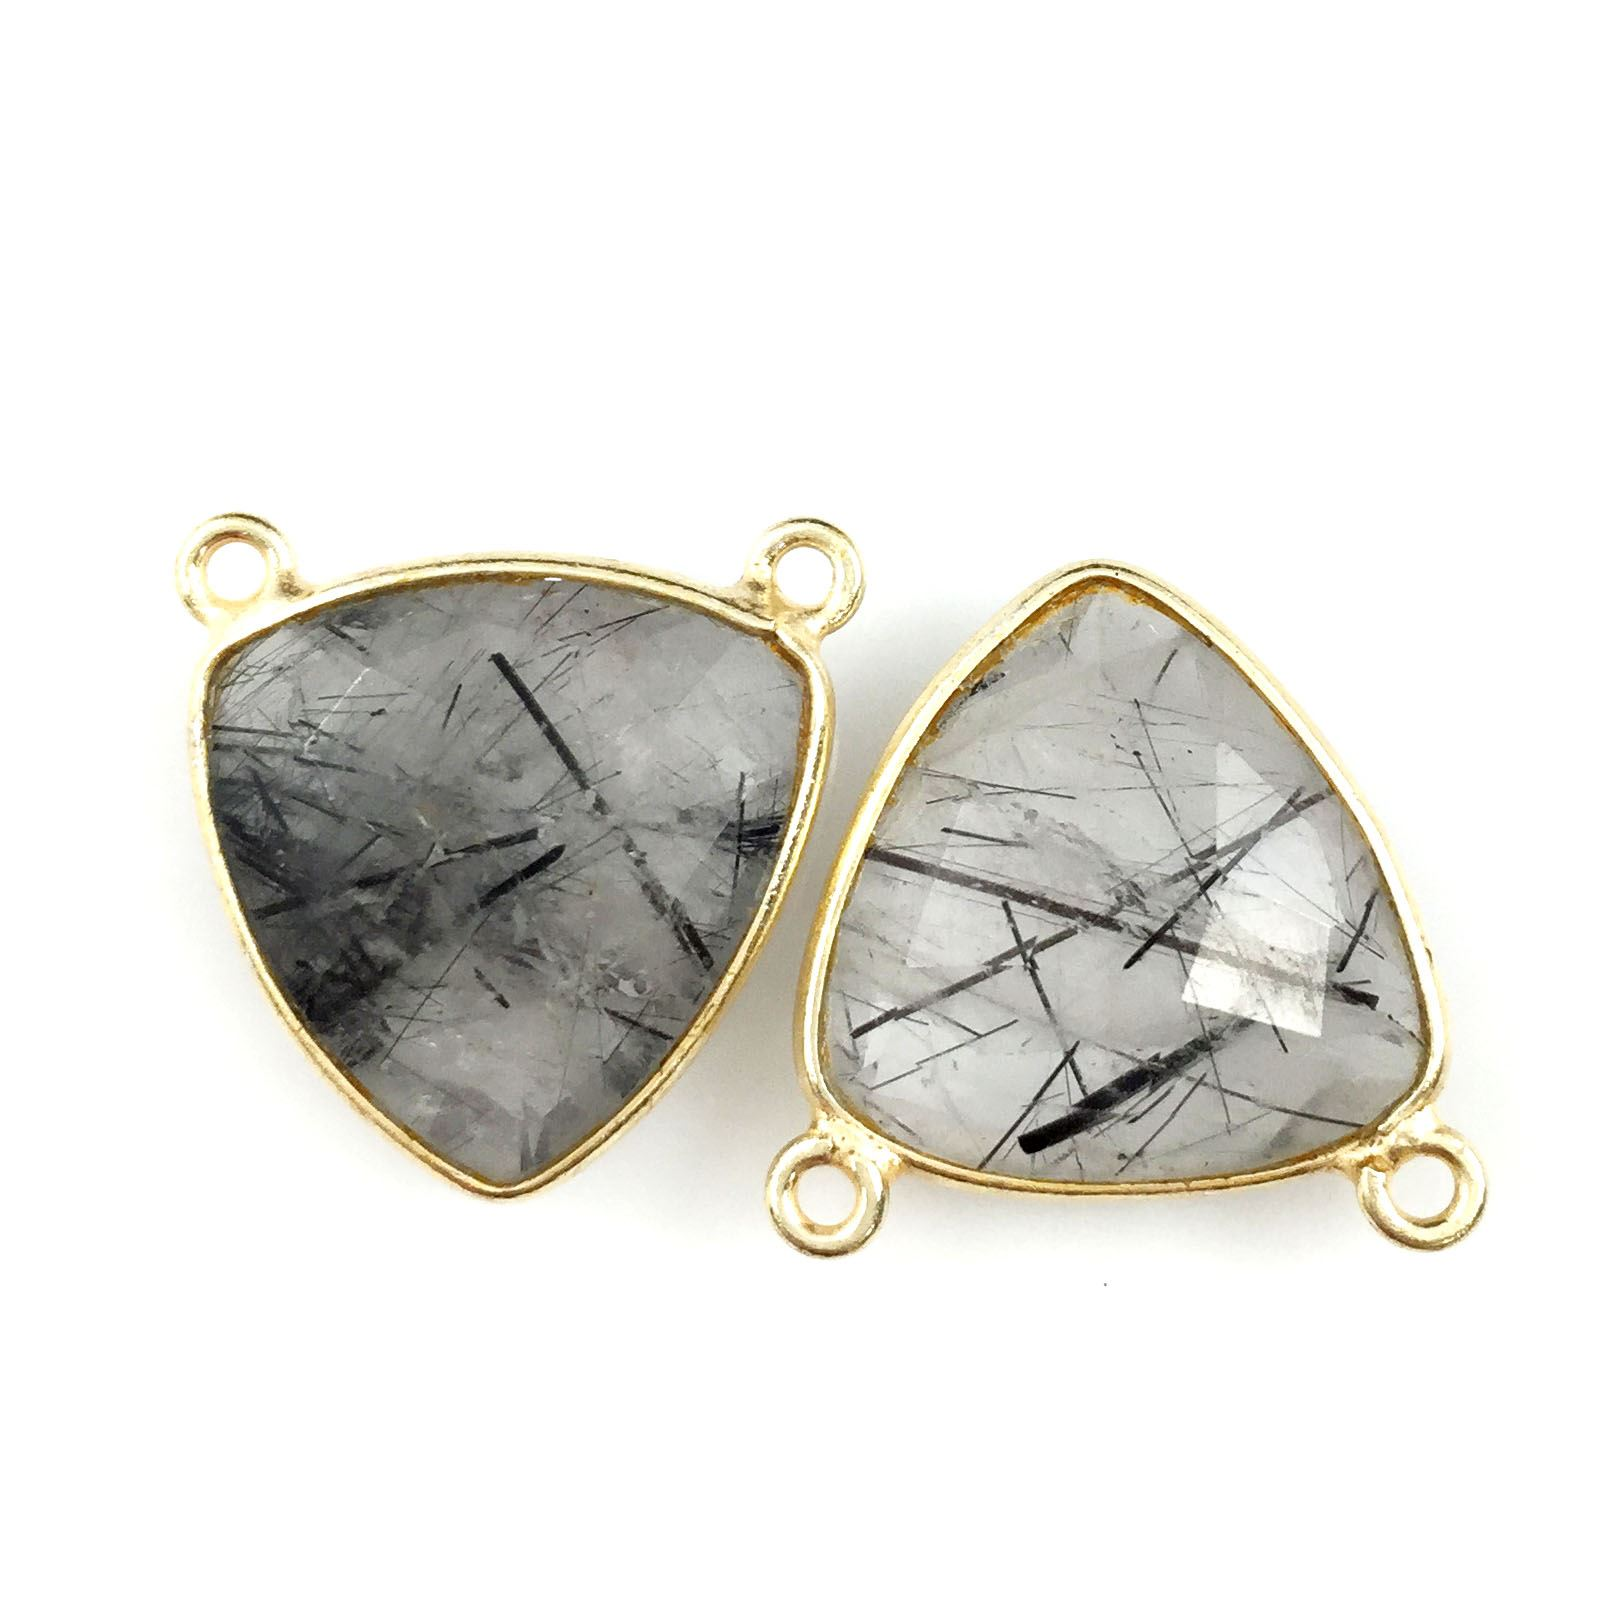 Bezel Gemstone Connector Pendant - Black Rutilated Quartz - Gold plated Sterling Silver - Small Trillion Shaped Faceted - 15mm - 1 piece